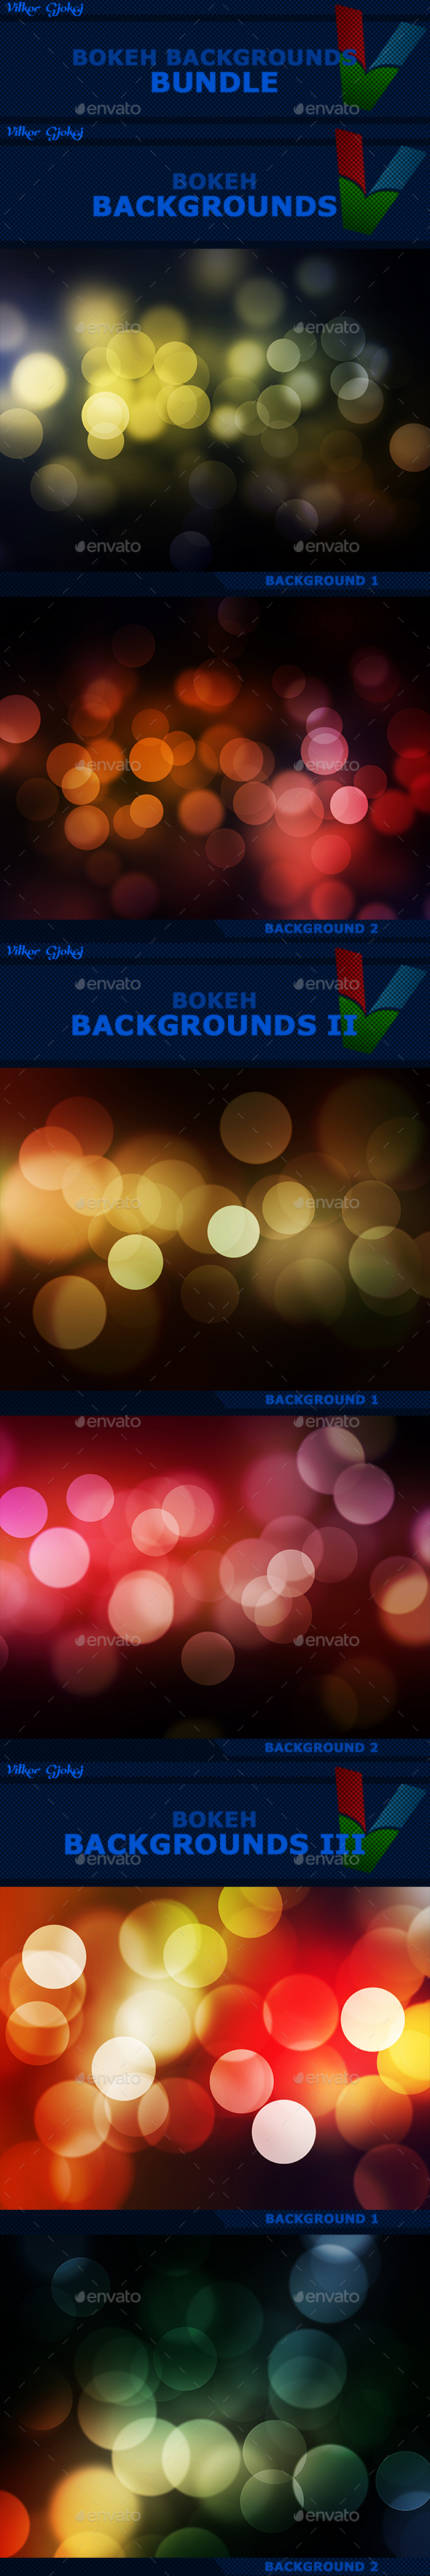 15 Bokeh Backgrounds BUNDLE - Abstract Backgrounds